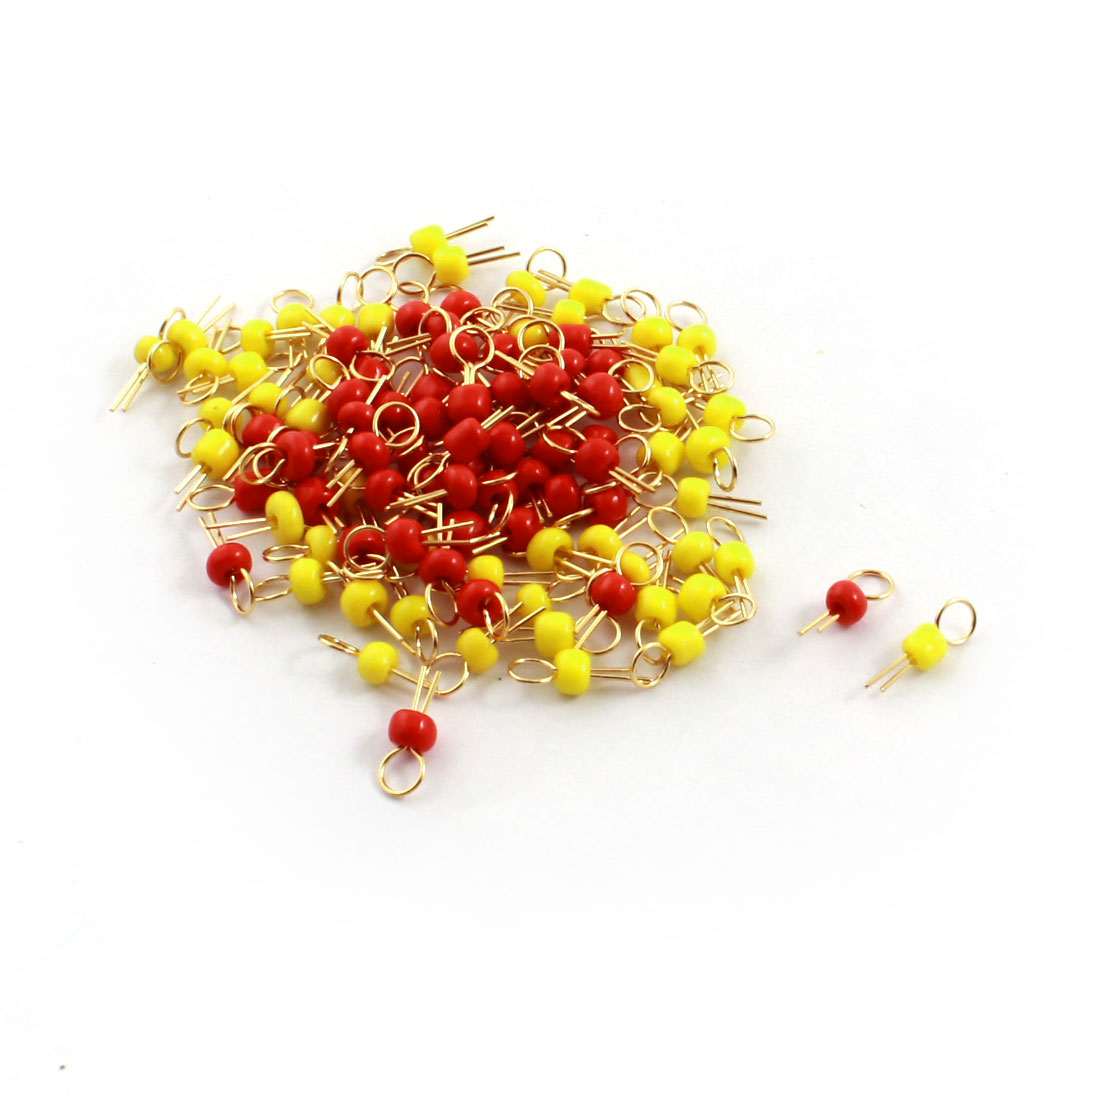 100Pcs Red + Yellow Ceramic Bead 3.2mm Head Dia Gold Tone Copper PCB Test Pin Terminals